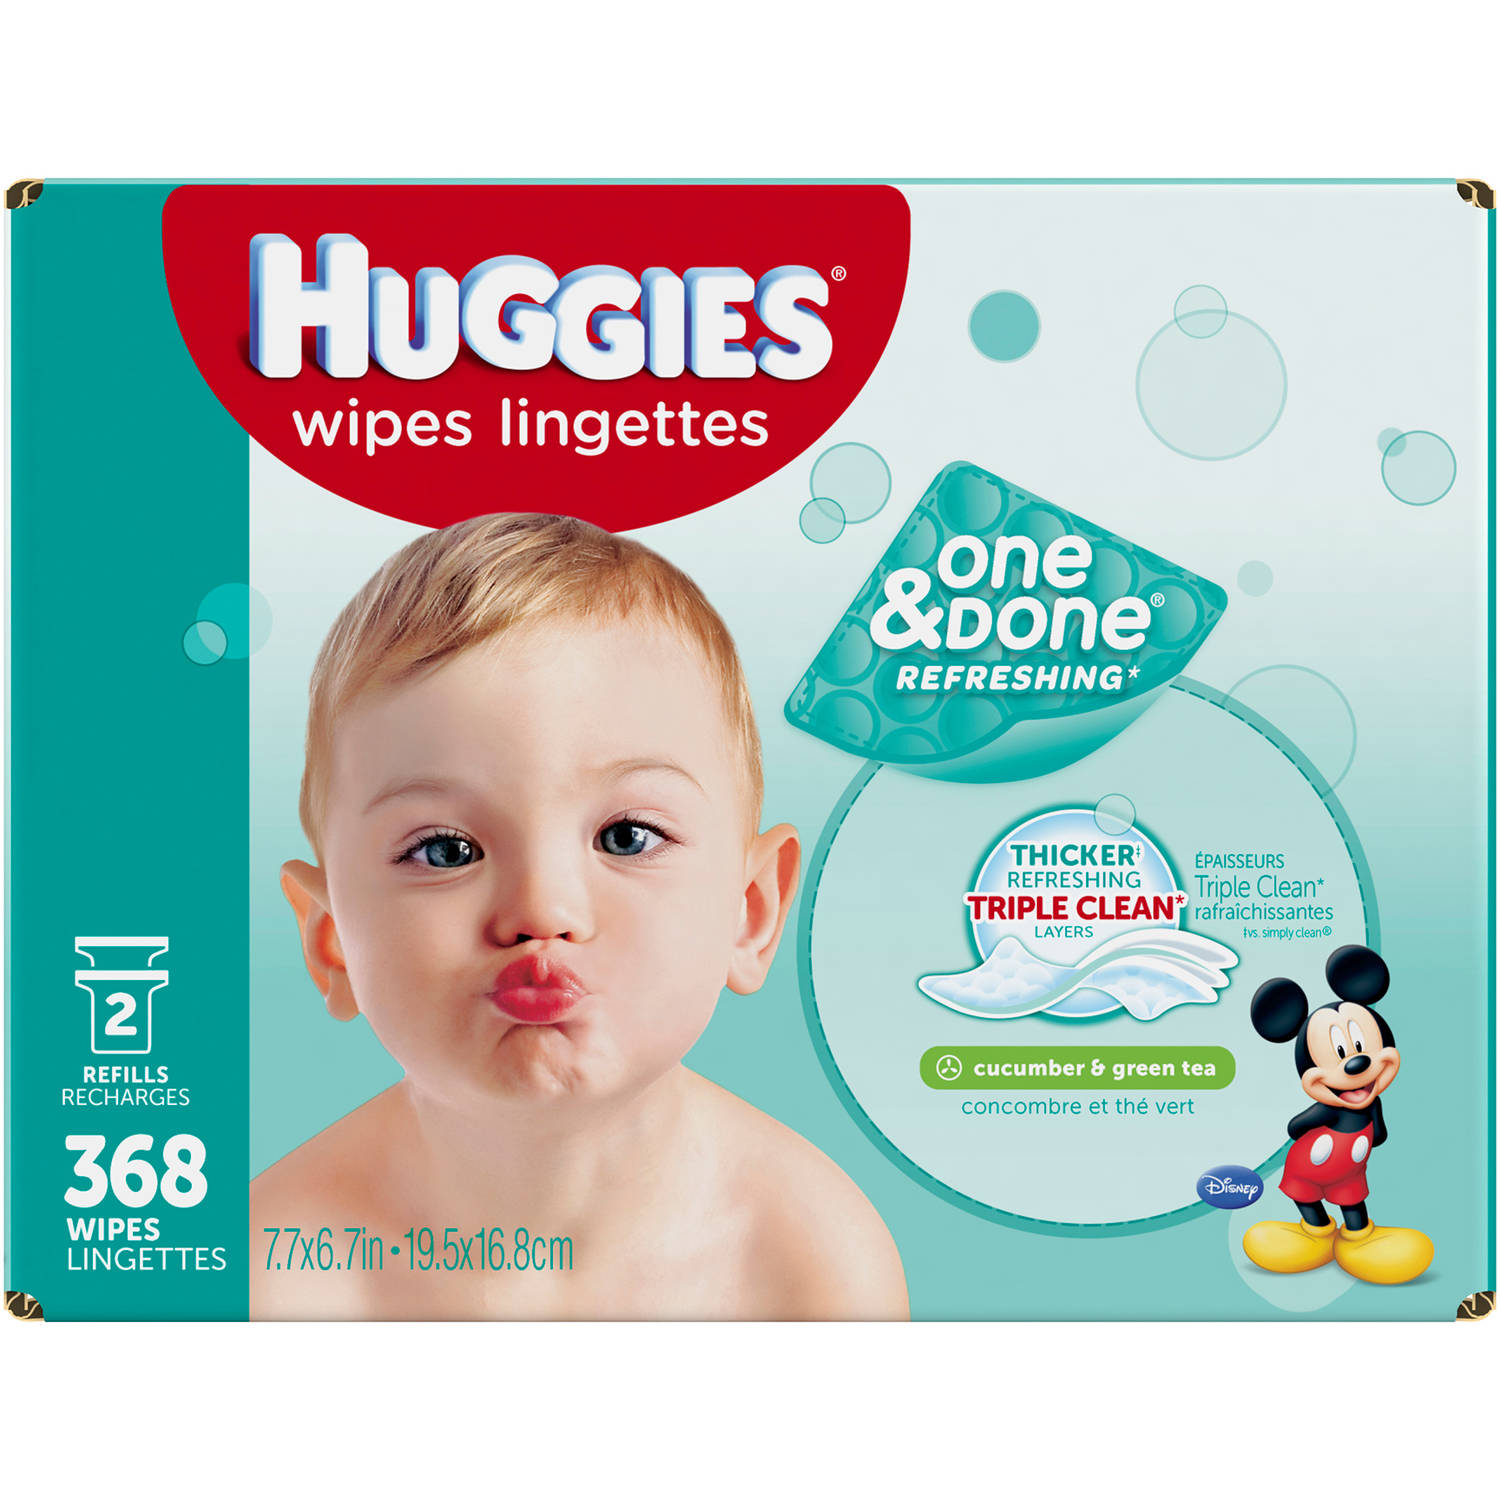 HUGGIES One & Done Refreshing Cucumber & Green Tea Baby Wipe Refills, 368 sheets